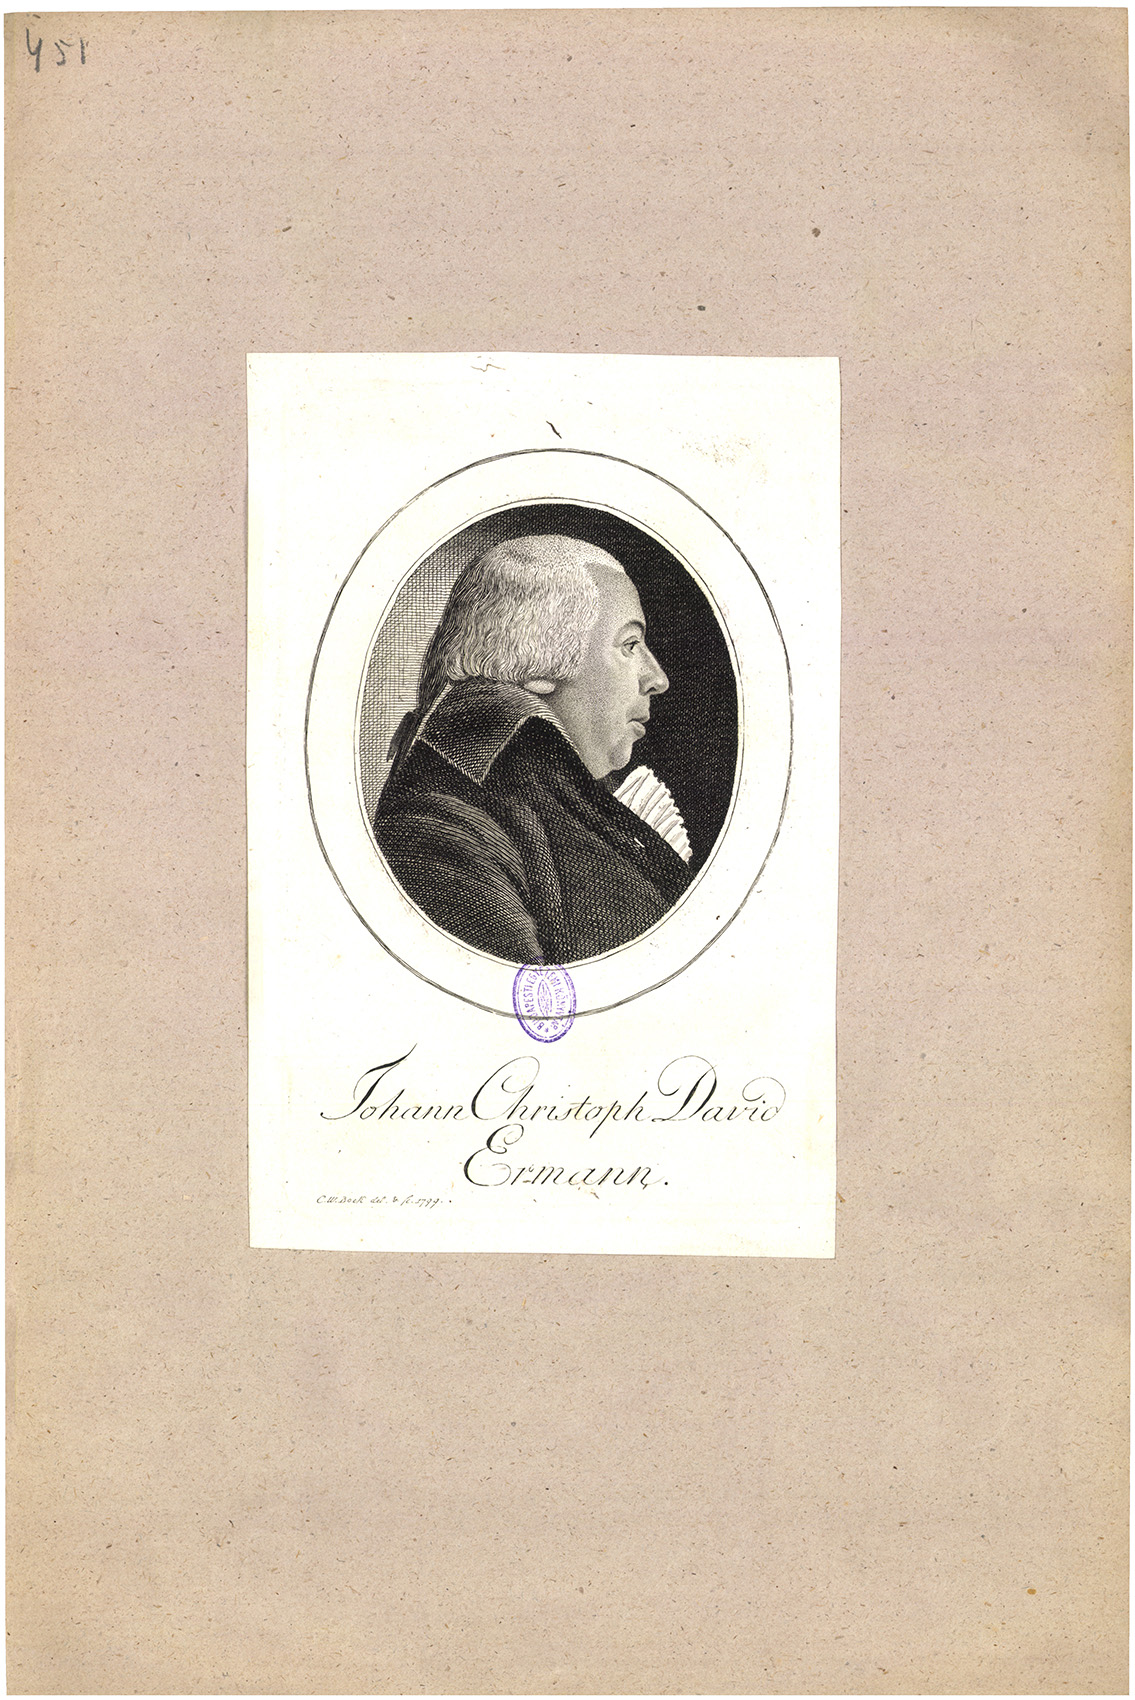 Johann Christoph David Ermann